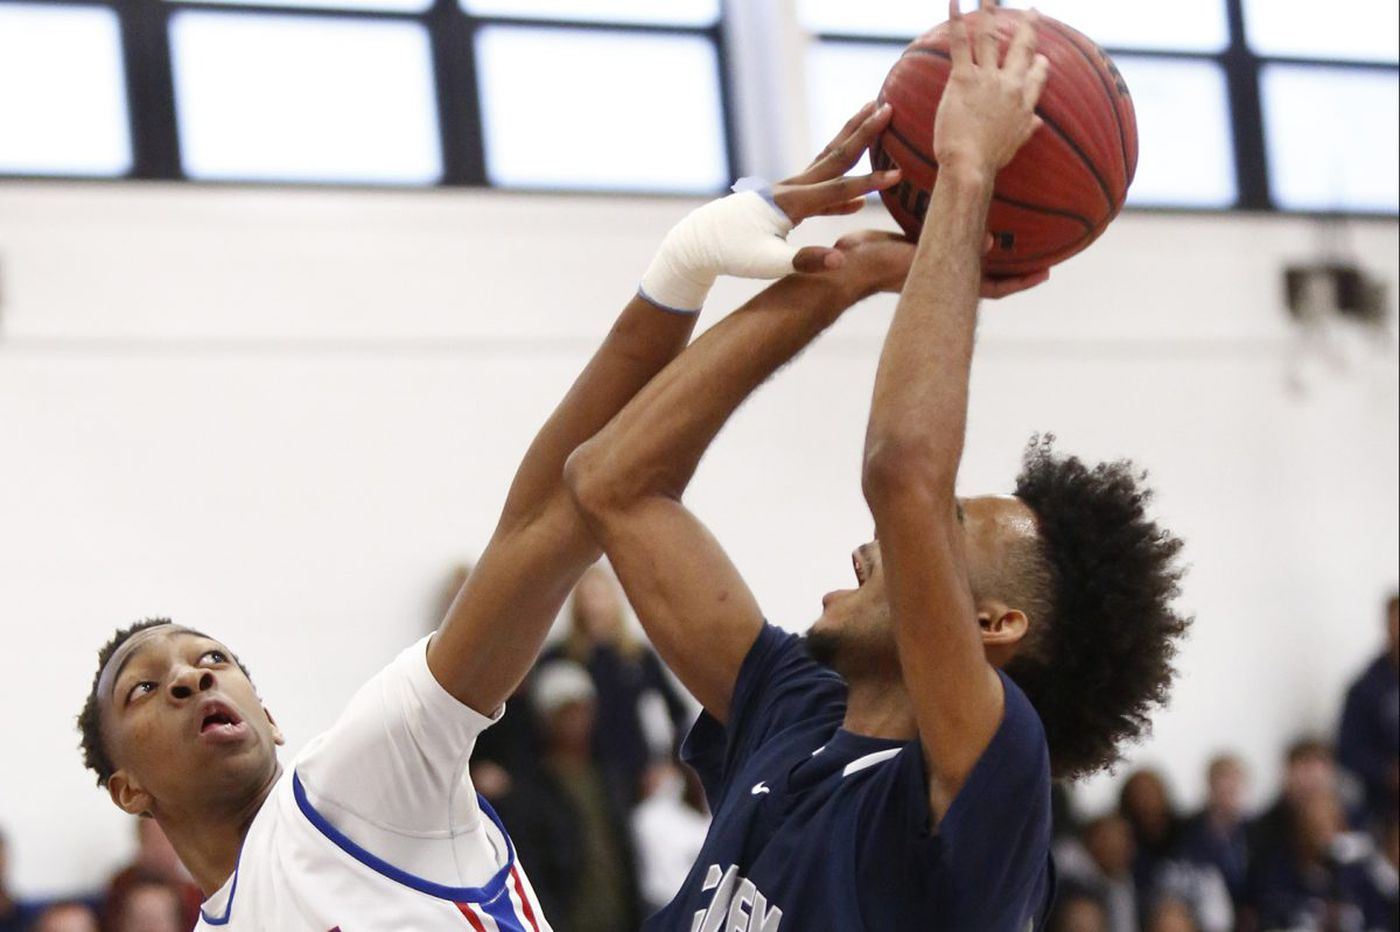 Jalen Collins leads way for Triton basketball